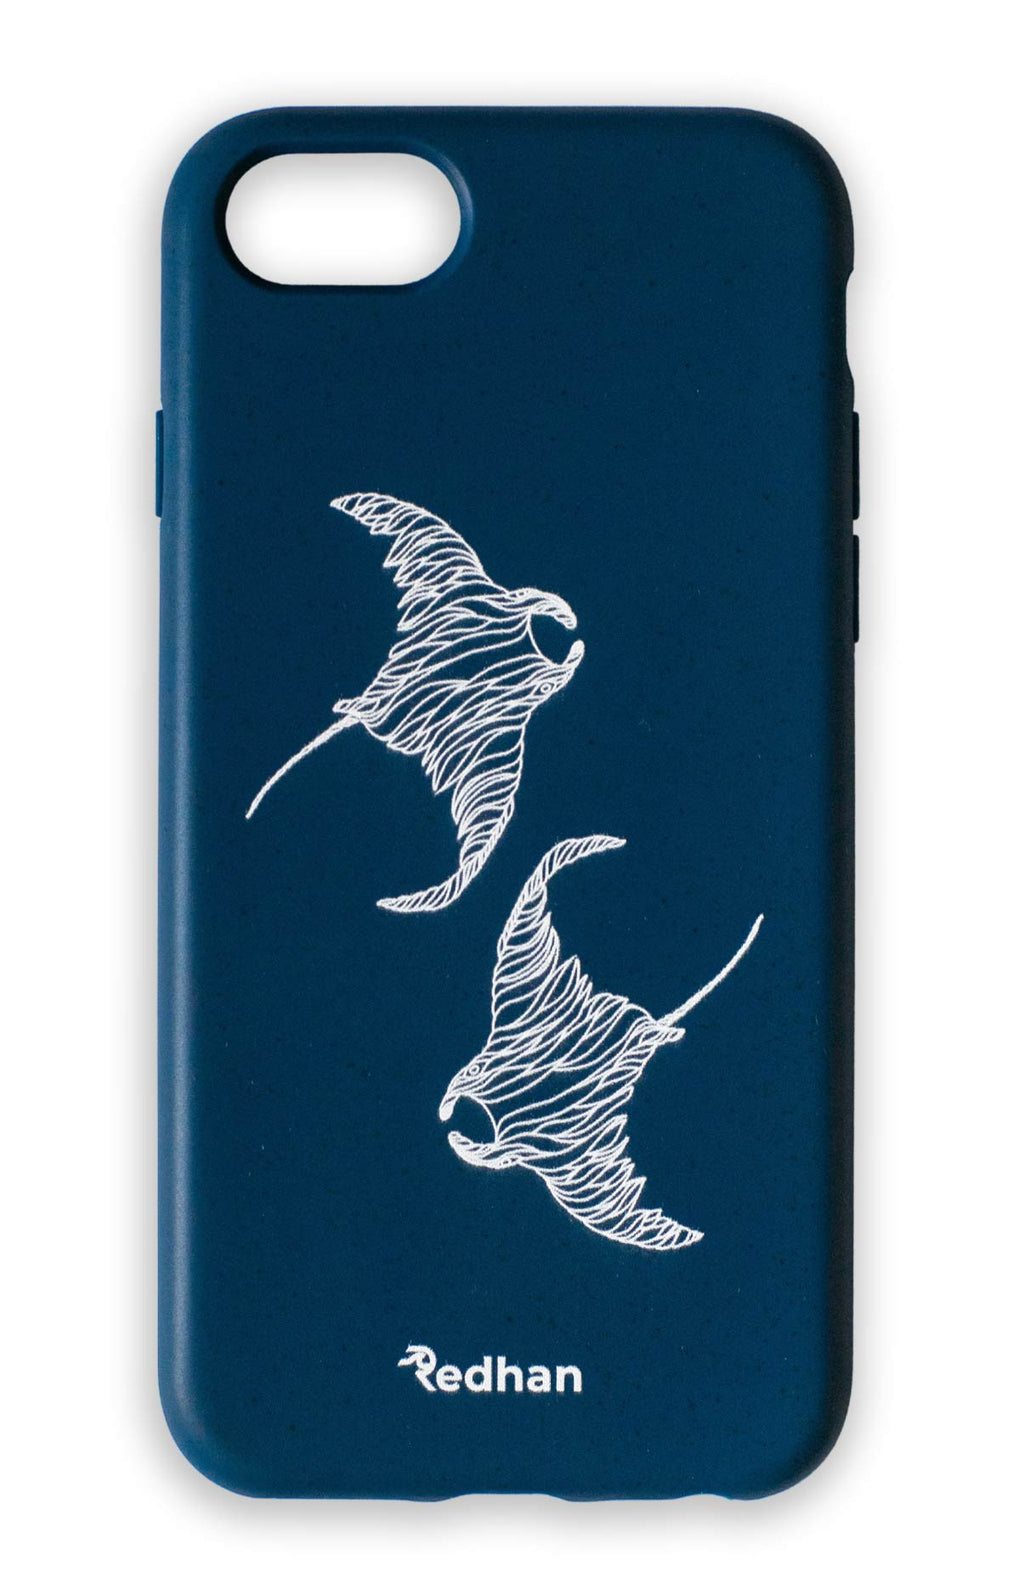 Eco Friendly iPhone 6 / 6S / 7 / 8 / SE (2° Gen) - Manta Fluo en azul navy